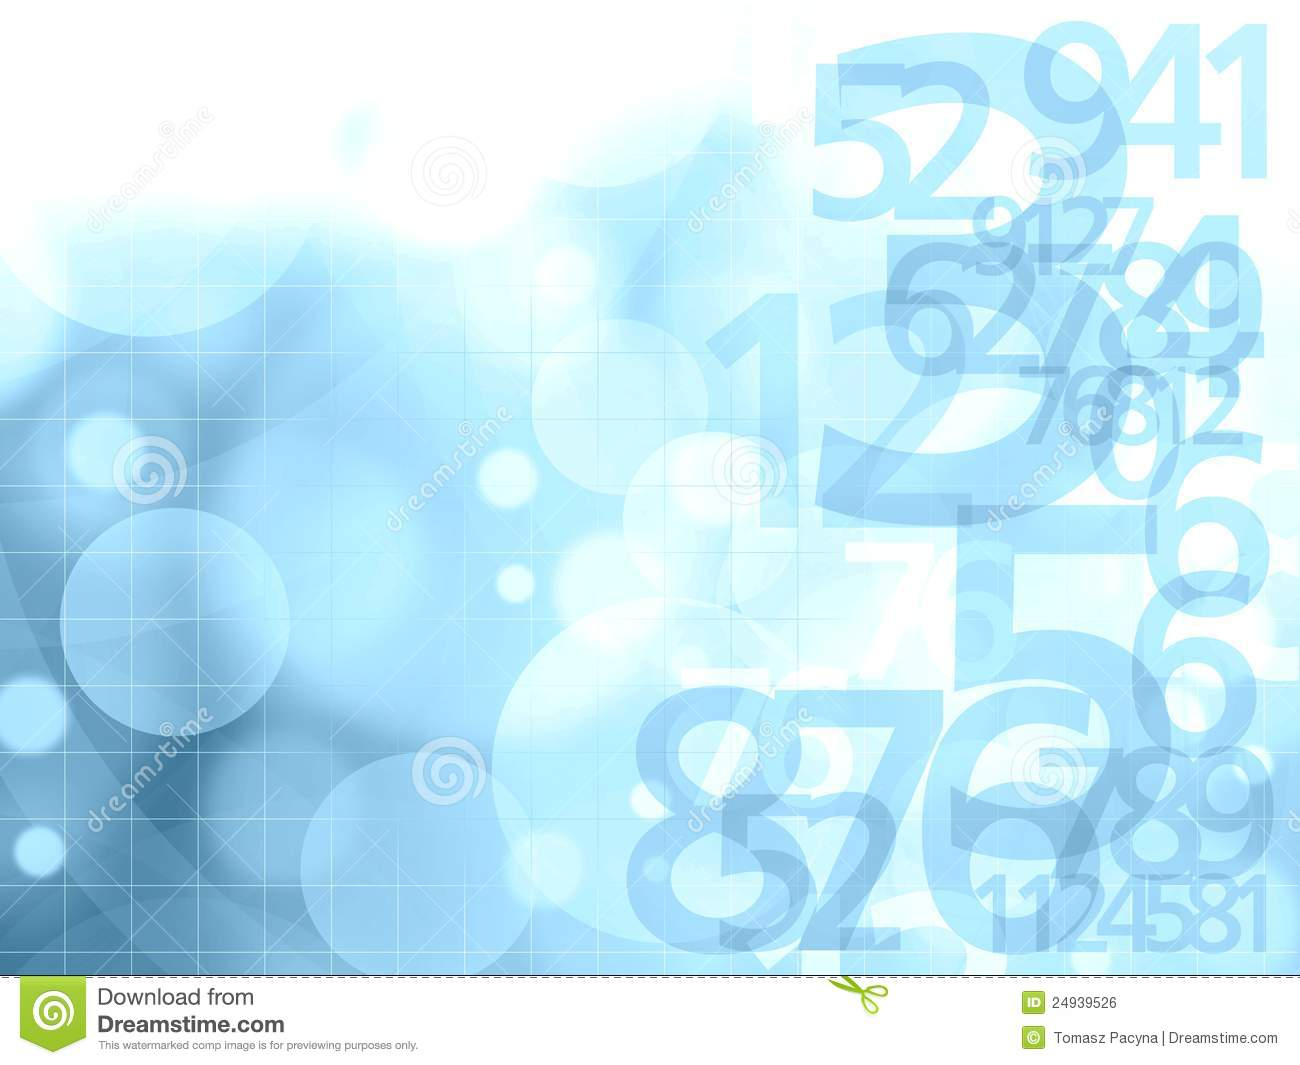 Numbers Background Royalty Free Stock Image - Image: 24939526